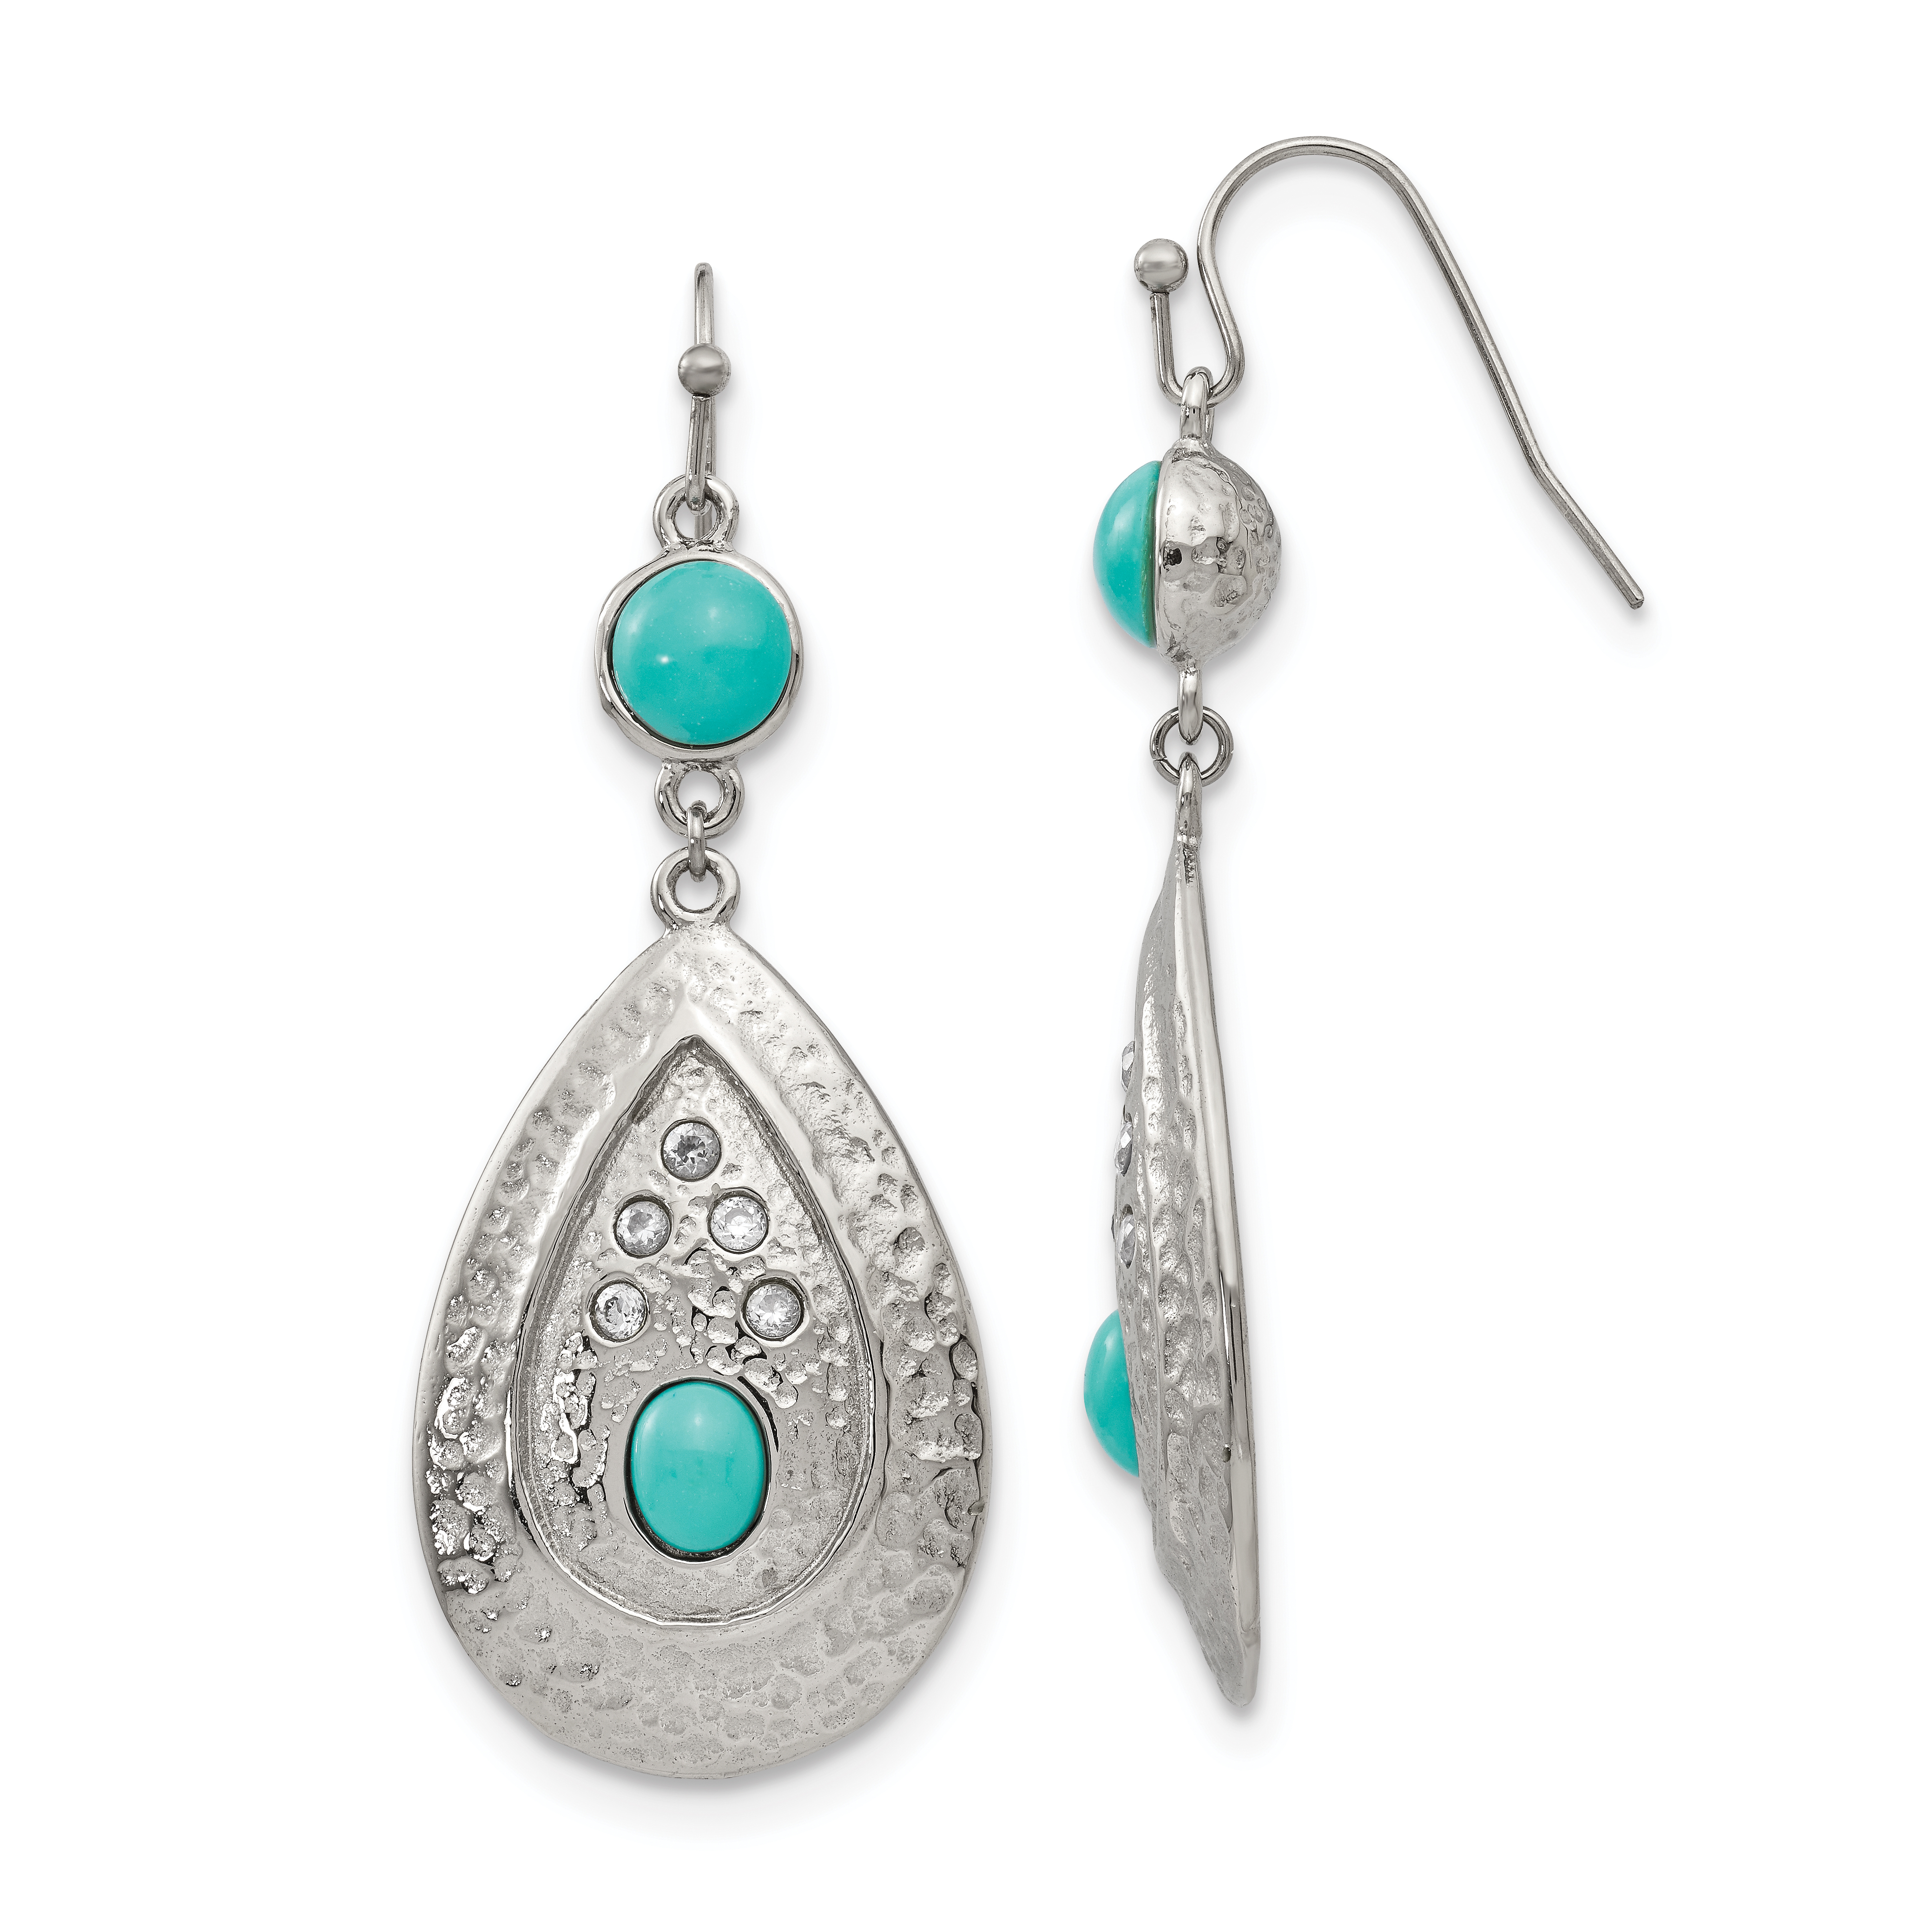 Stainless Steel Polished/Hammered Imitation Turquoise/CZ Earrings - image 4 of 4